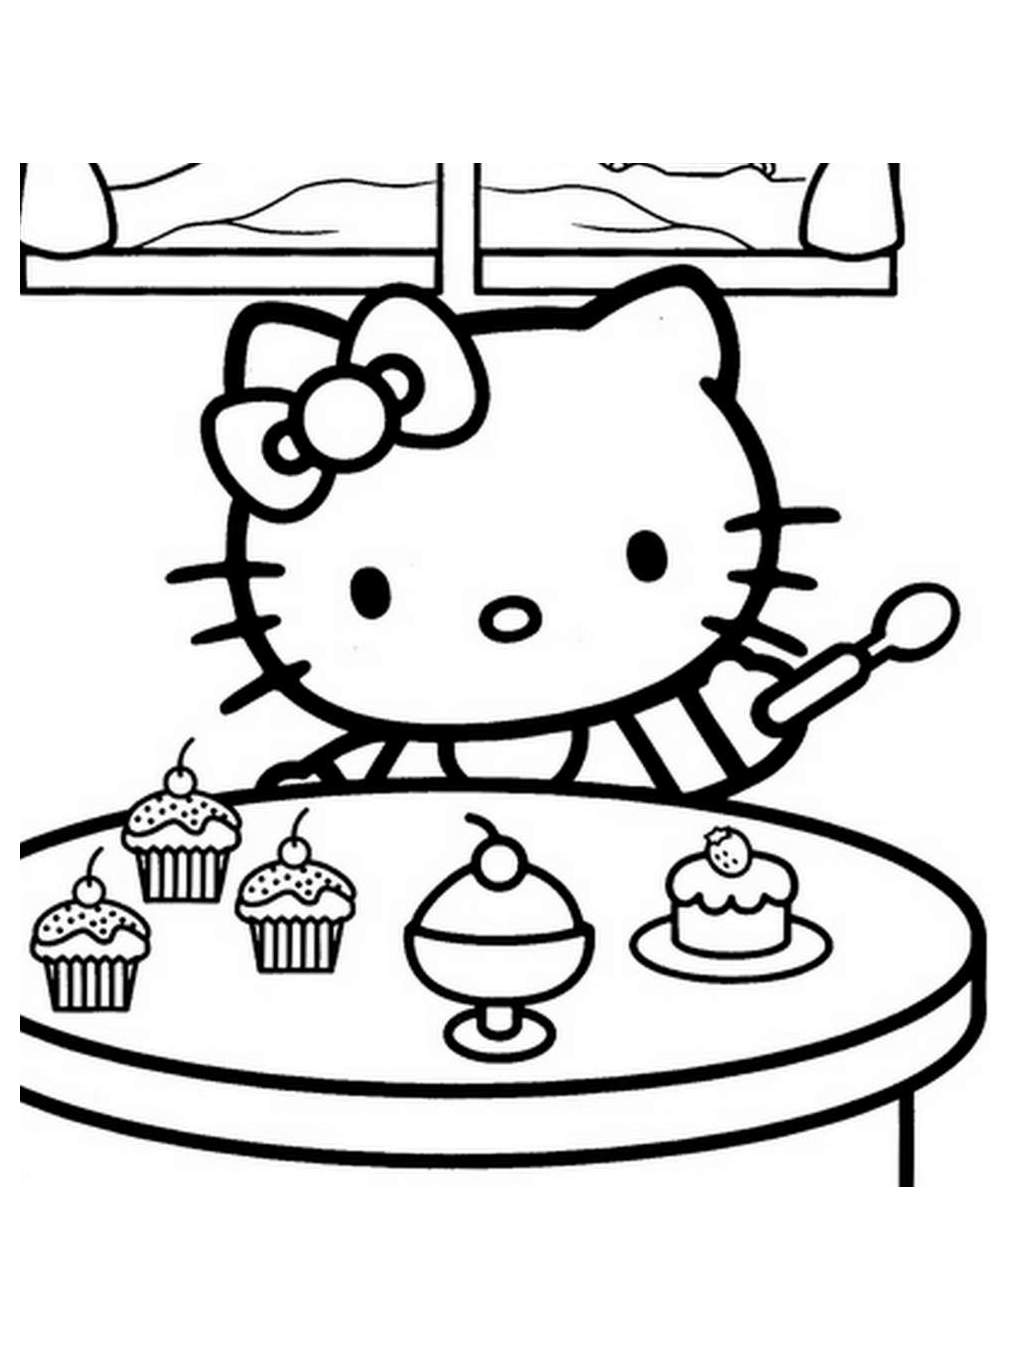 hello kitty pictures to print hello kitty free to color for kids hello kitty kids kitty to pictures hello print